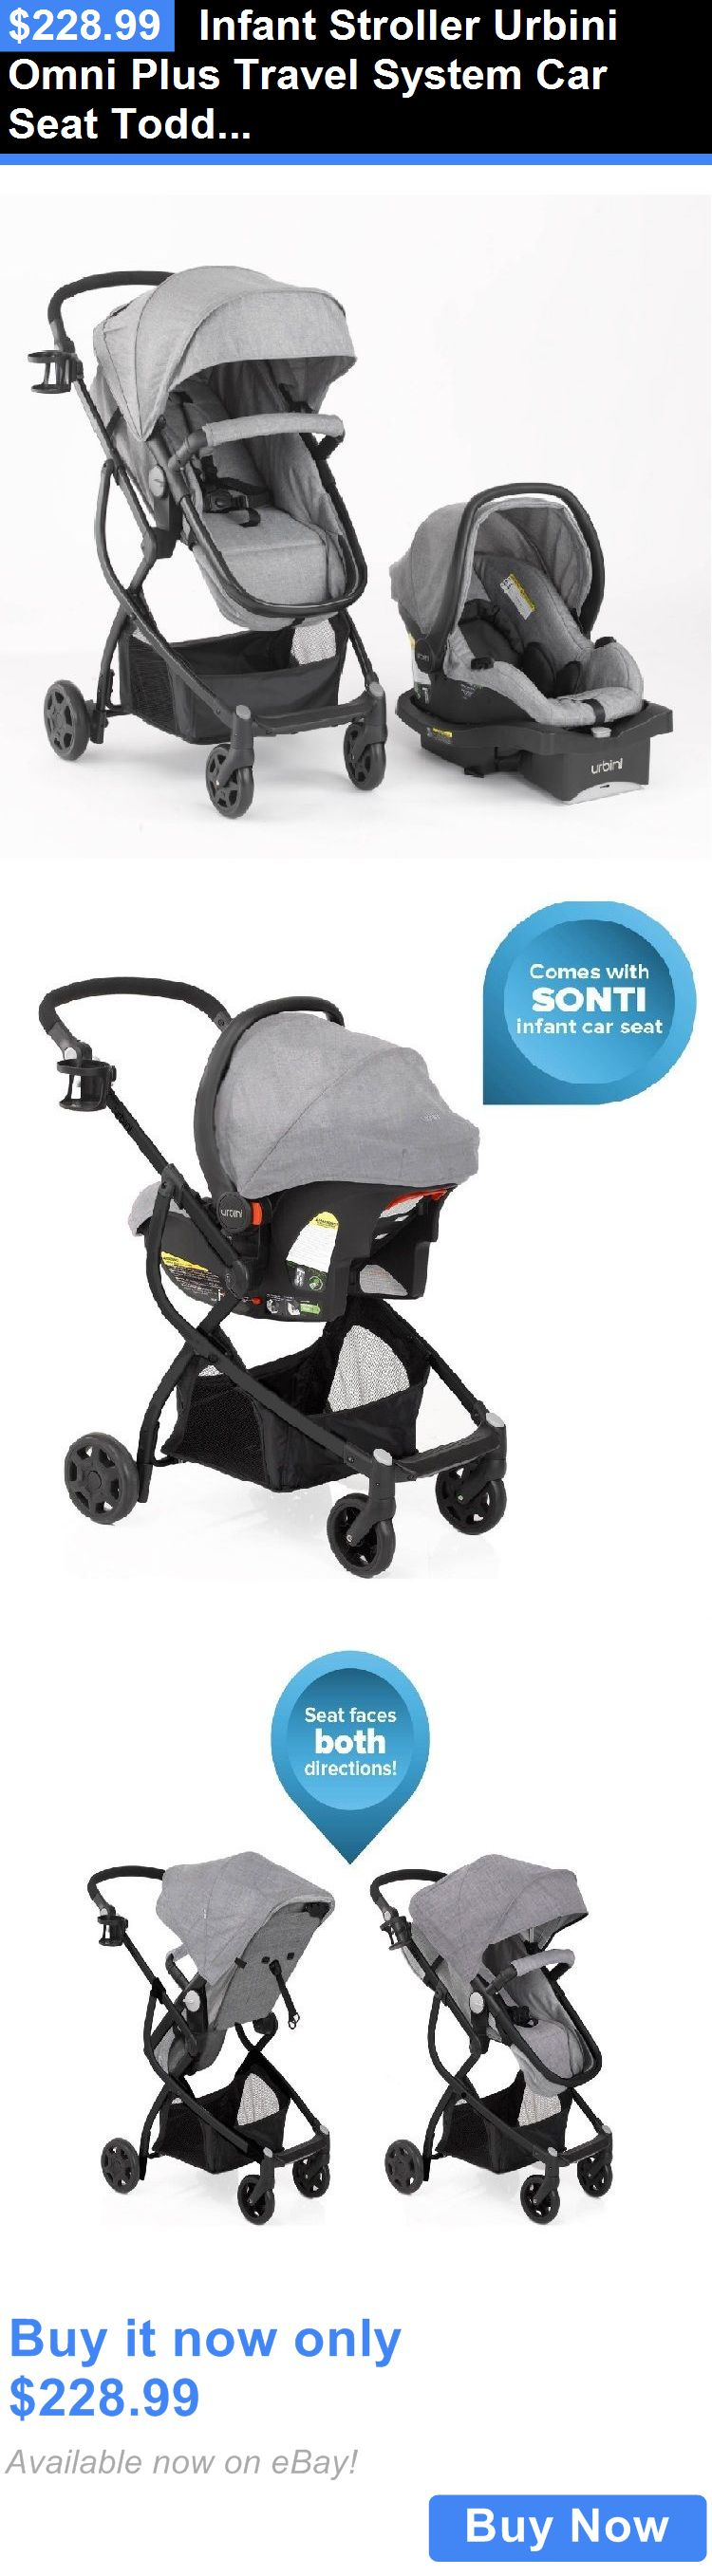 Baby And Kid Stuff Infant Stroller Urbini Omni Plus Travel System Car Seat Toddler Special Edition BUY IT NOW ONLY 22899